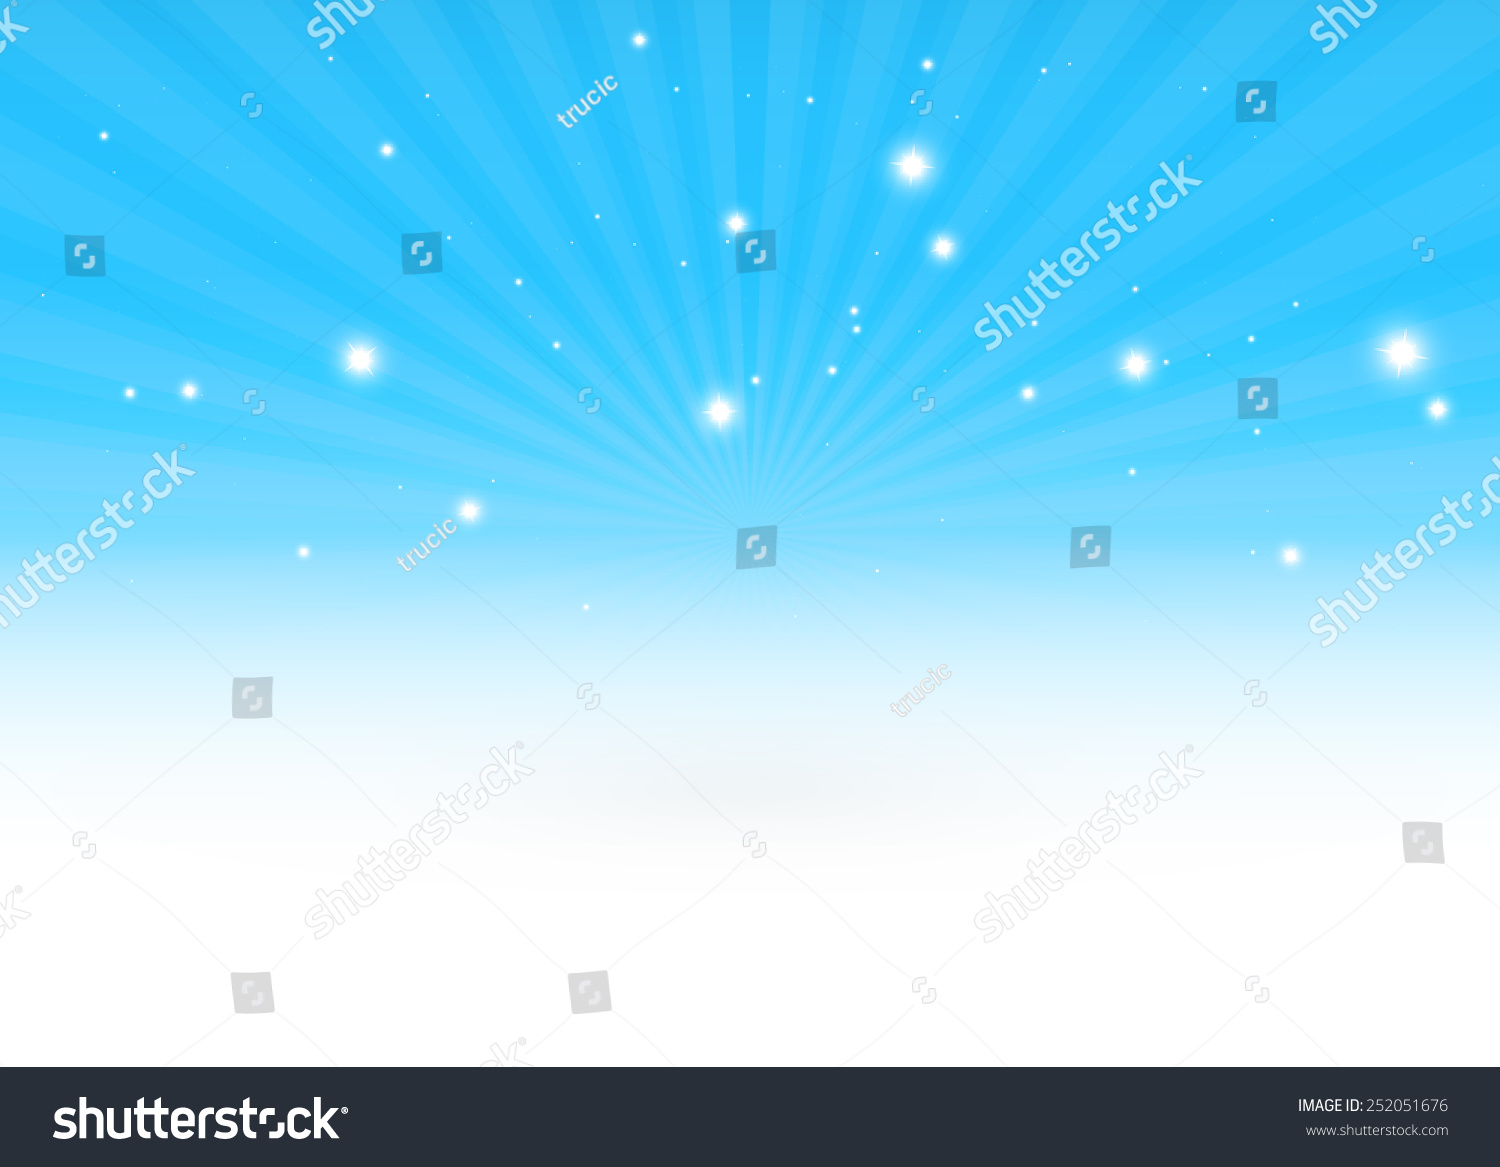 Glittering vector 3d blue burst scene stock vector for Space blast 3d